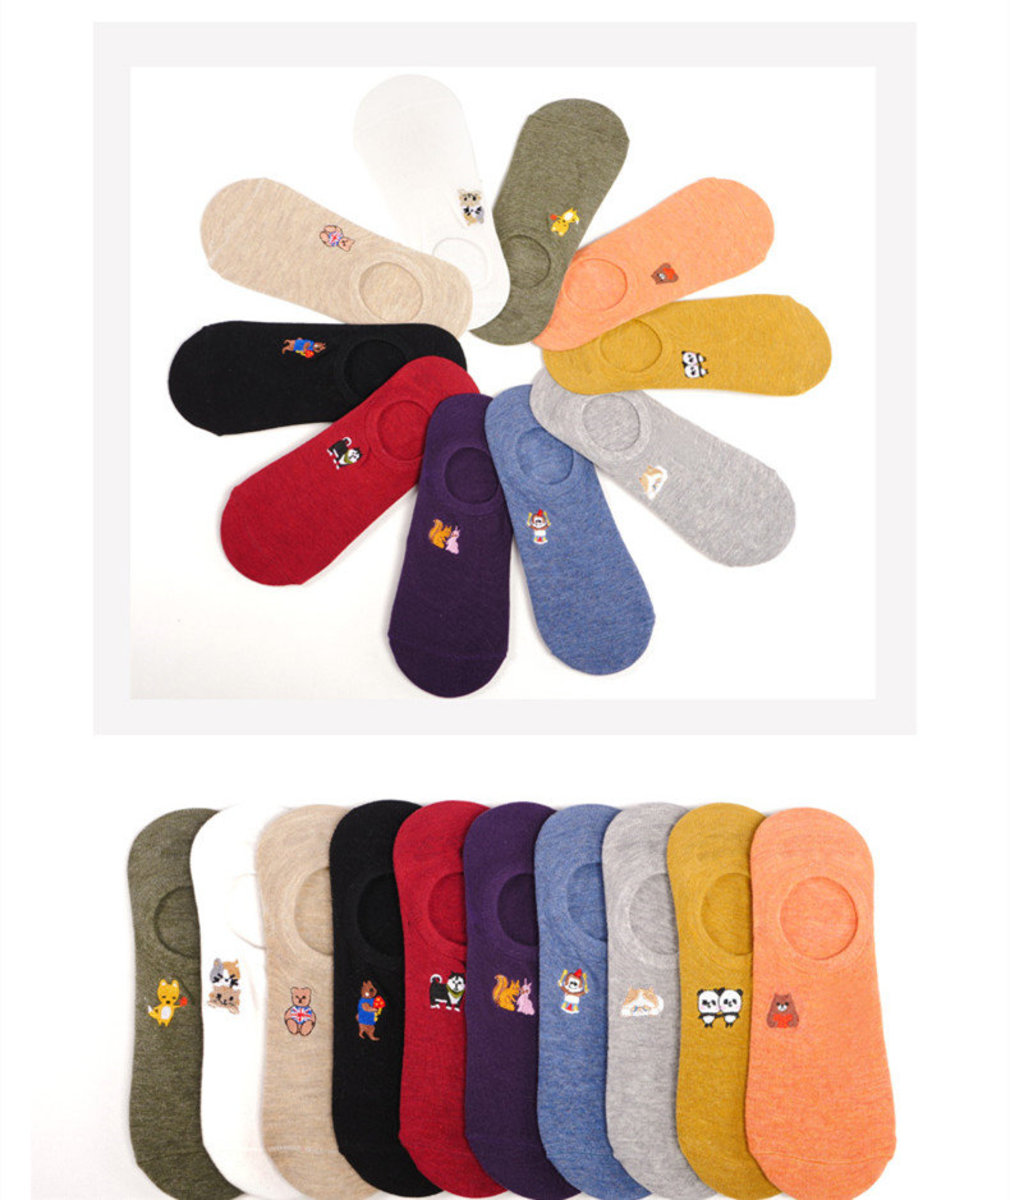 【5 pairs - Mixed color, random shipment】 Japanee-style non-slip Animal cotton boat Socks for Women